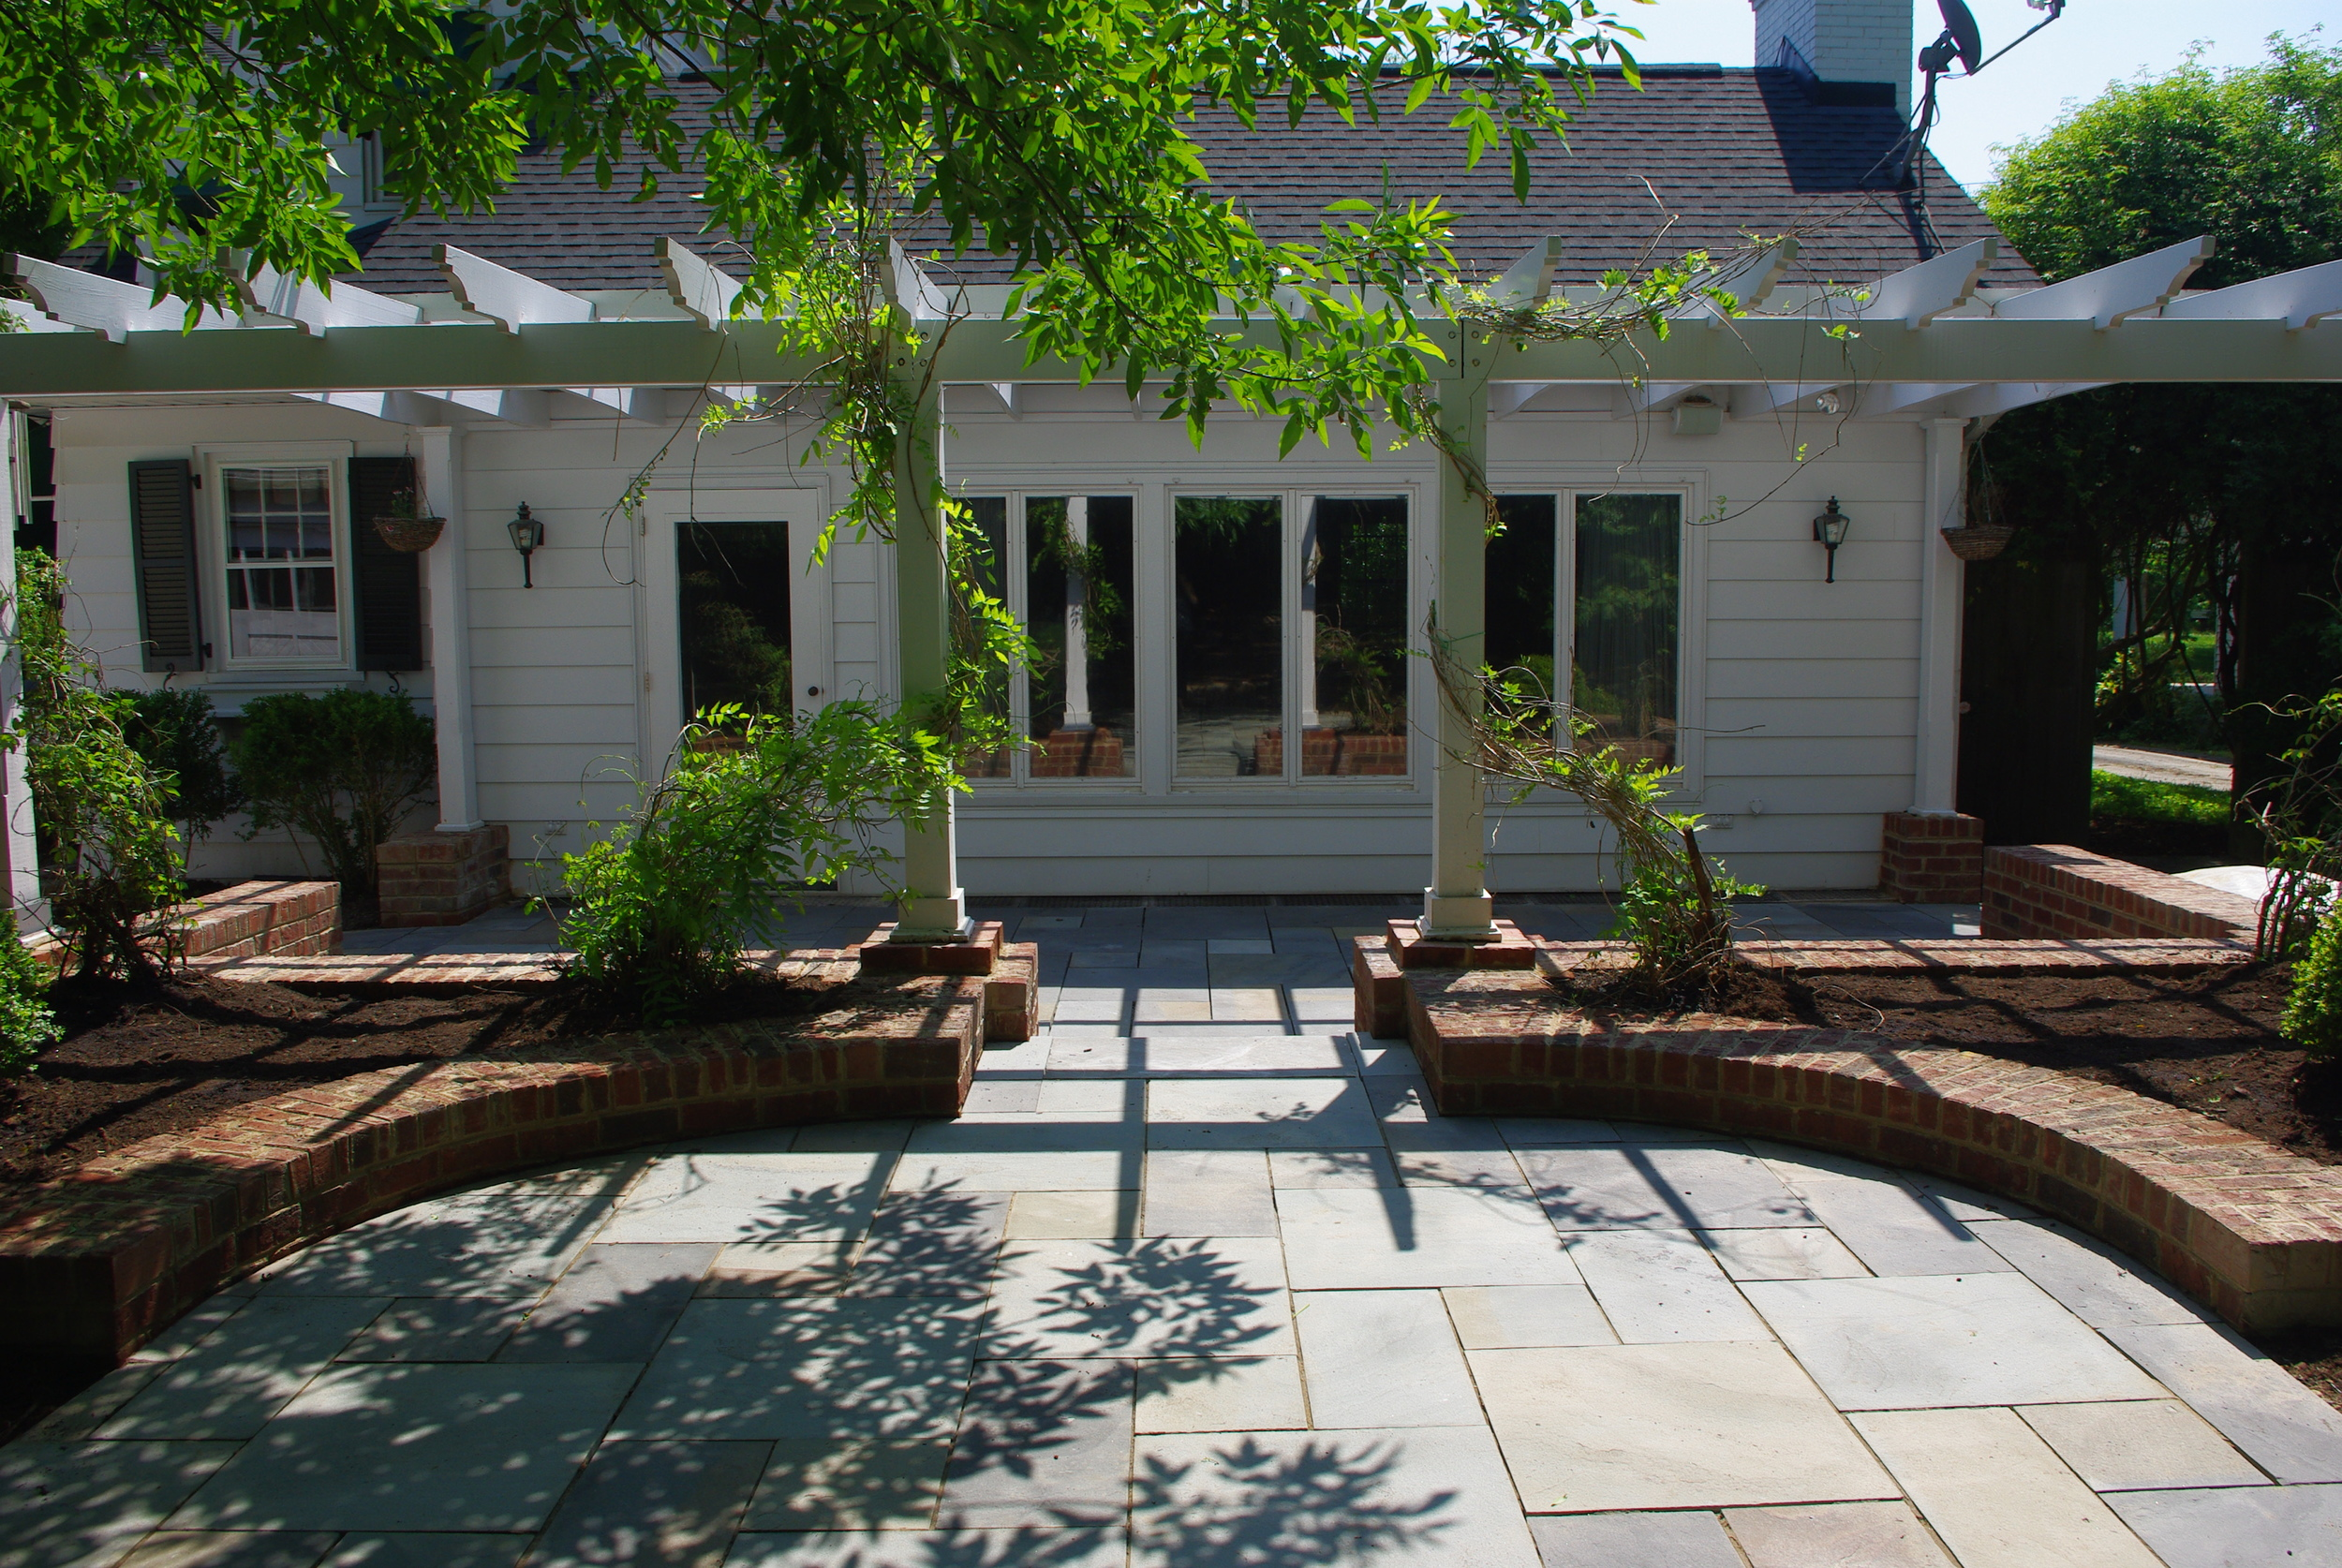 Bluestone Patio/Brick Planters- 3D Landscape Design Burlington, NC